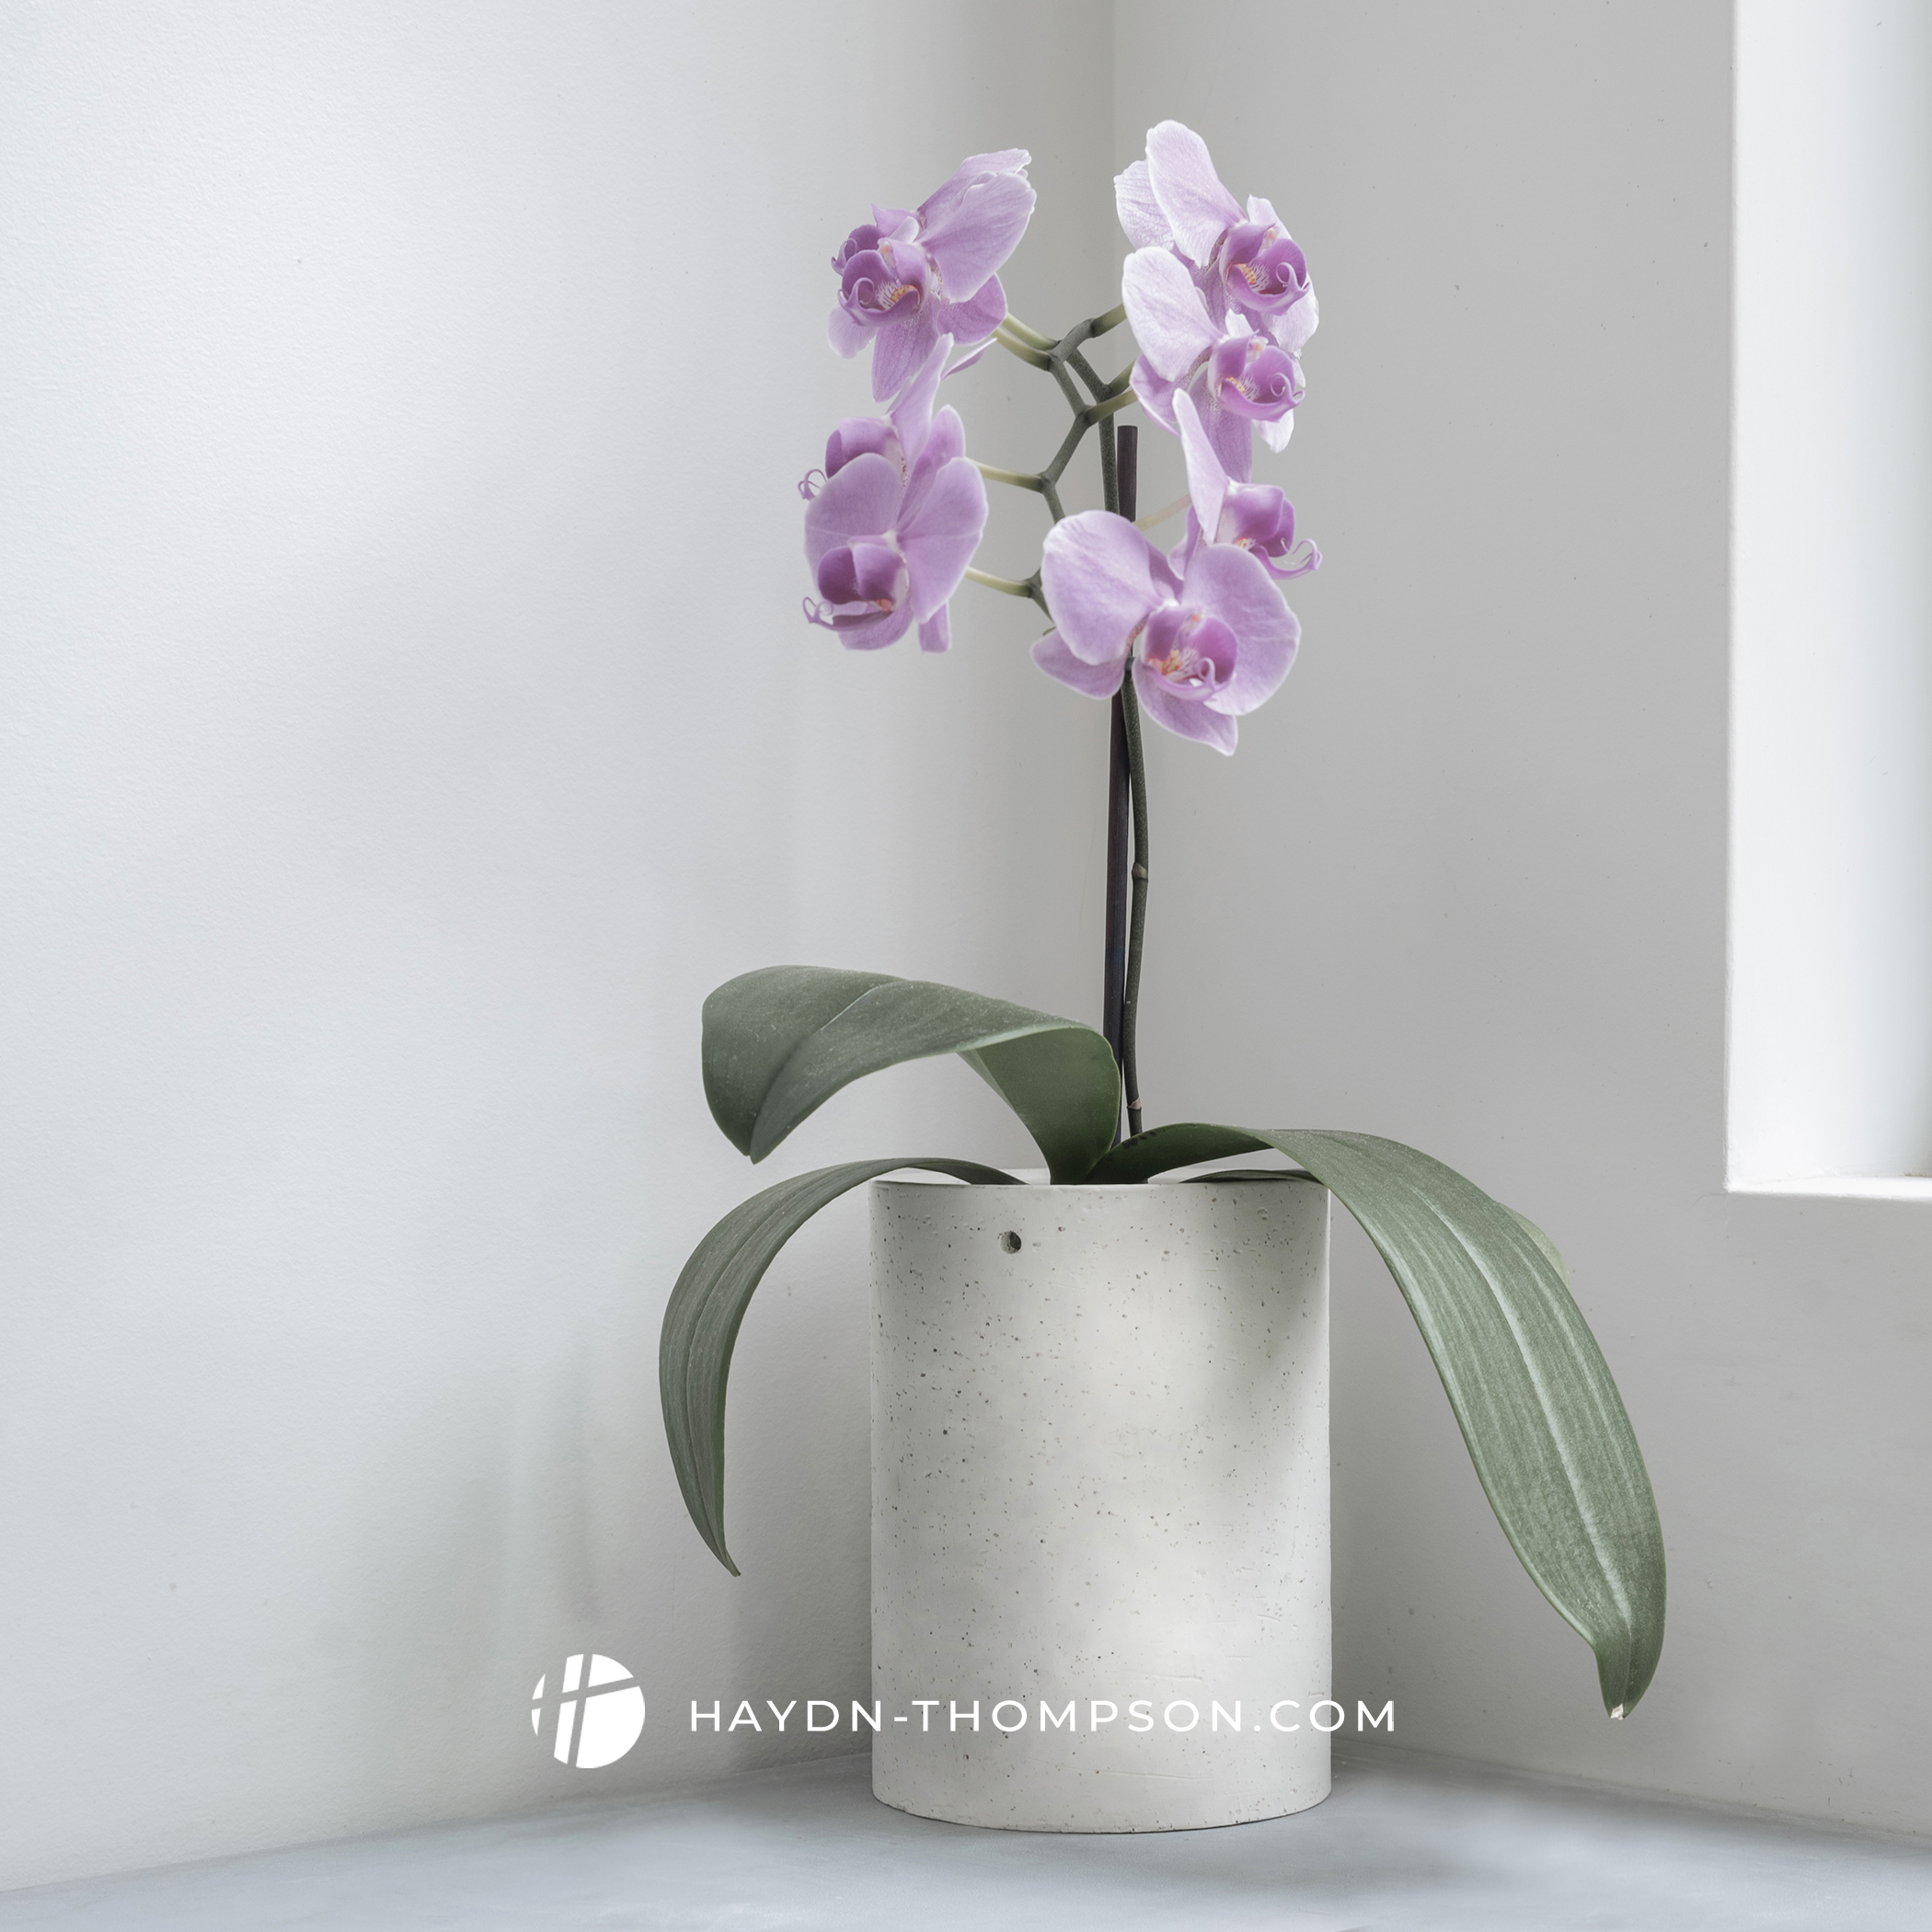 Planters - Orchid - On Kitchen Bench Corner (Small Size - Watermark).jpg